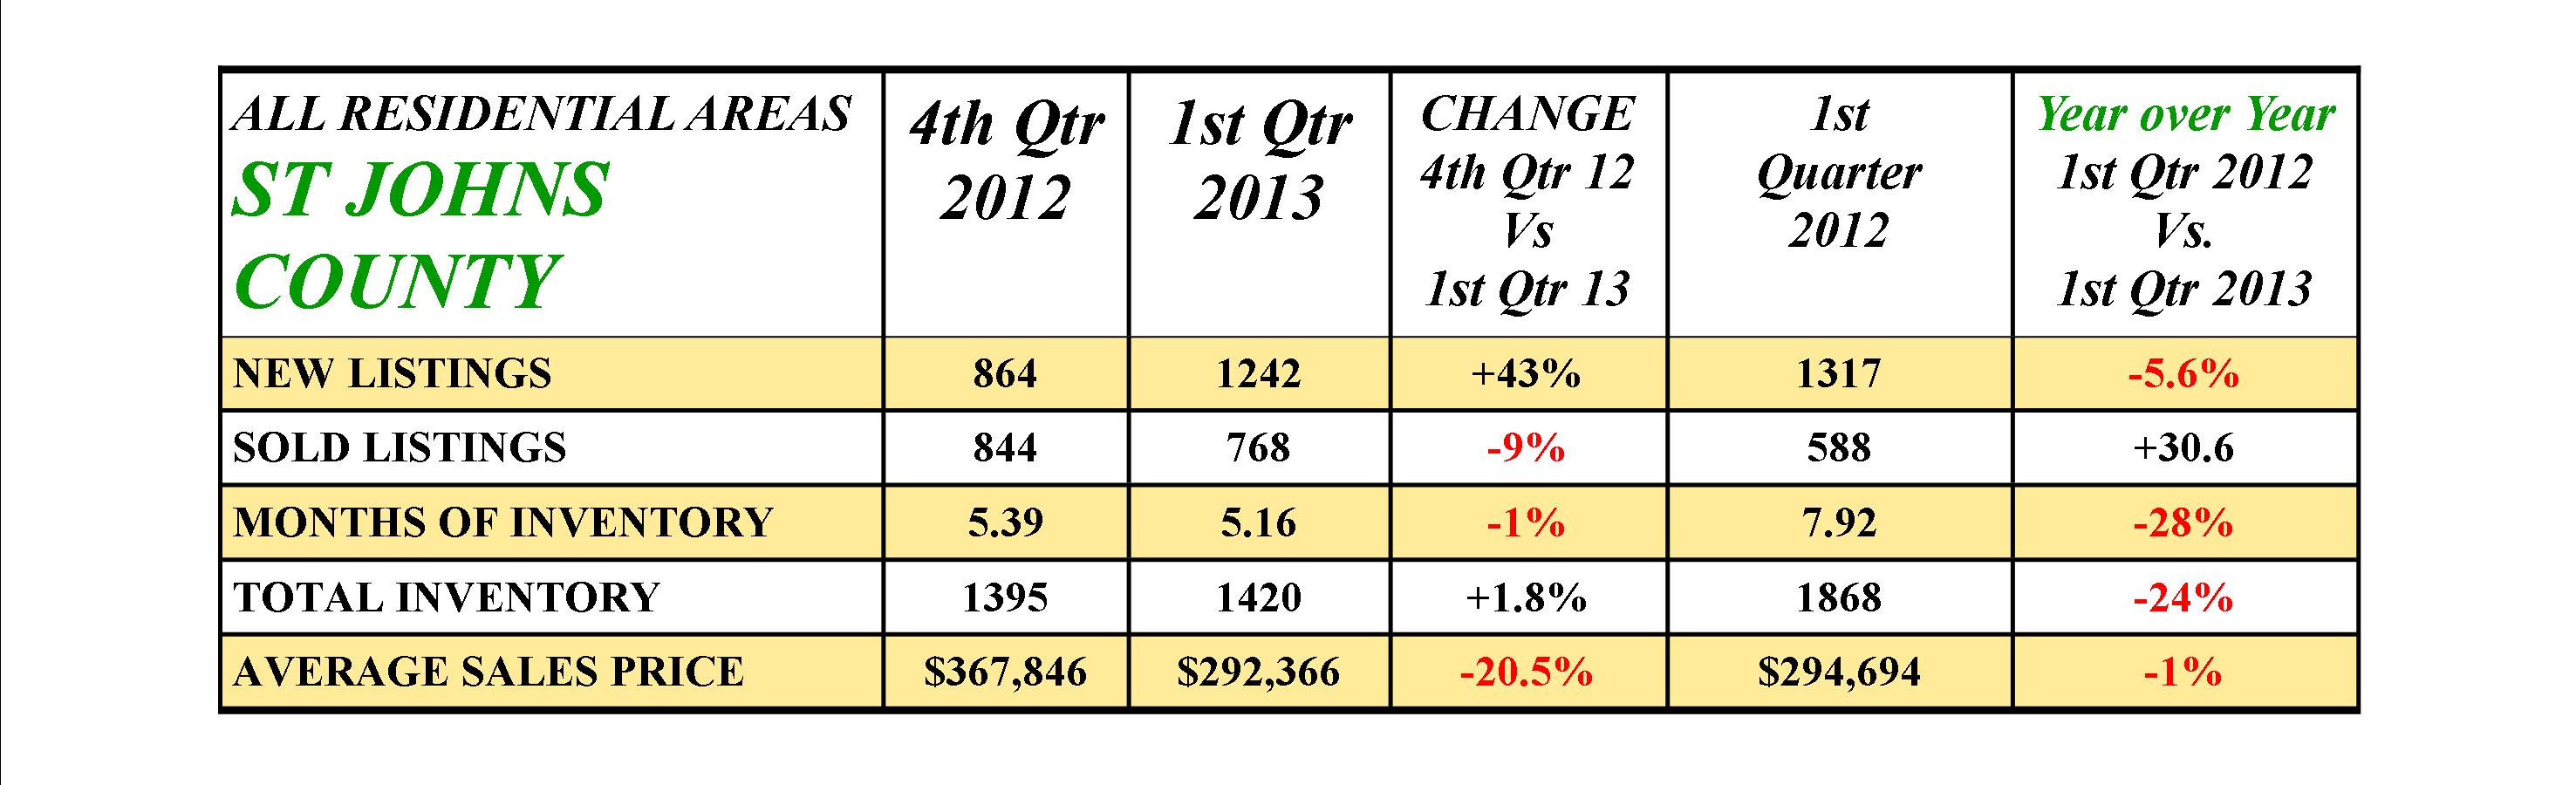 St Johns CO 1st Quarter 2013 Market Stats